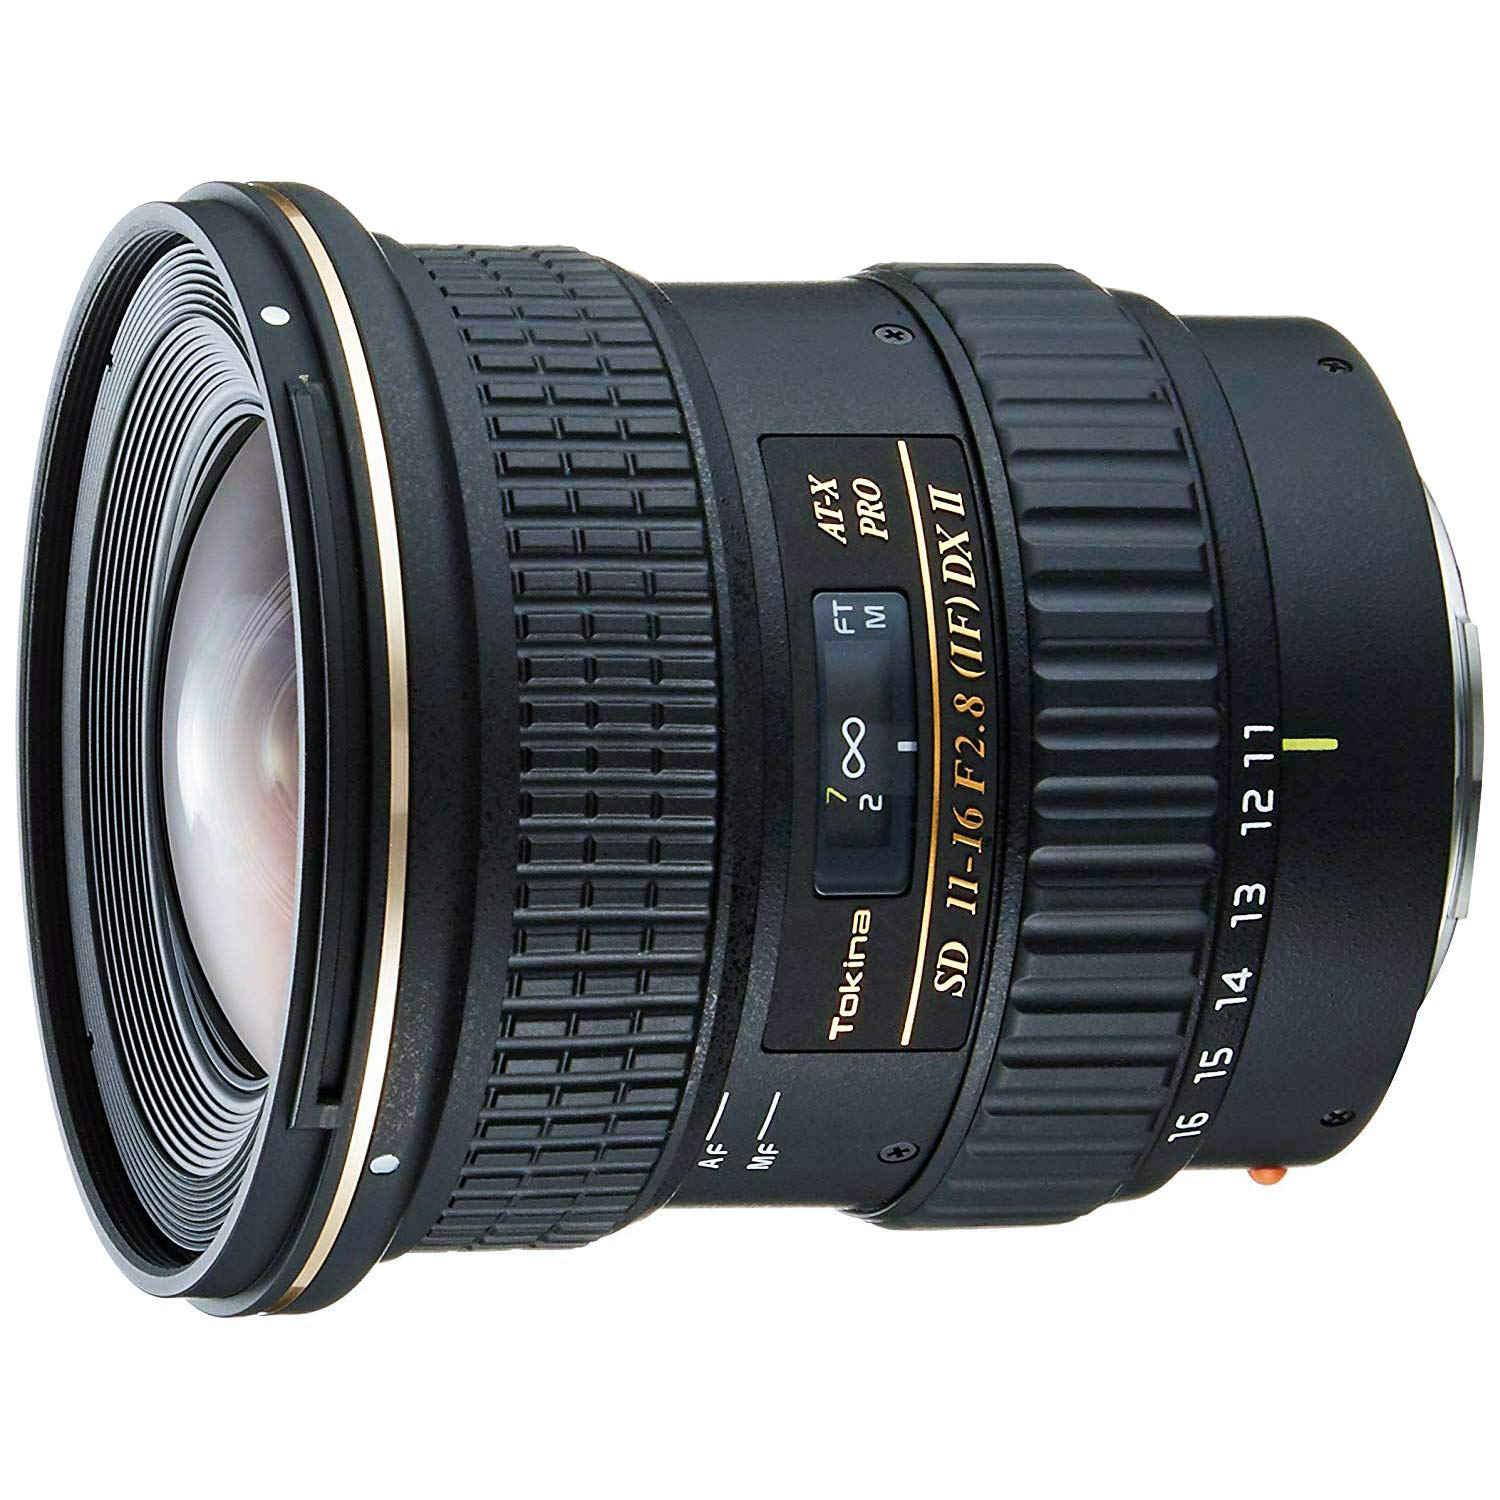 Tokina 11-16mm f/2.8 AT-X116 Pro DX II Digital Zoom Lens for